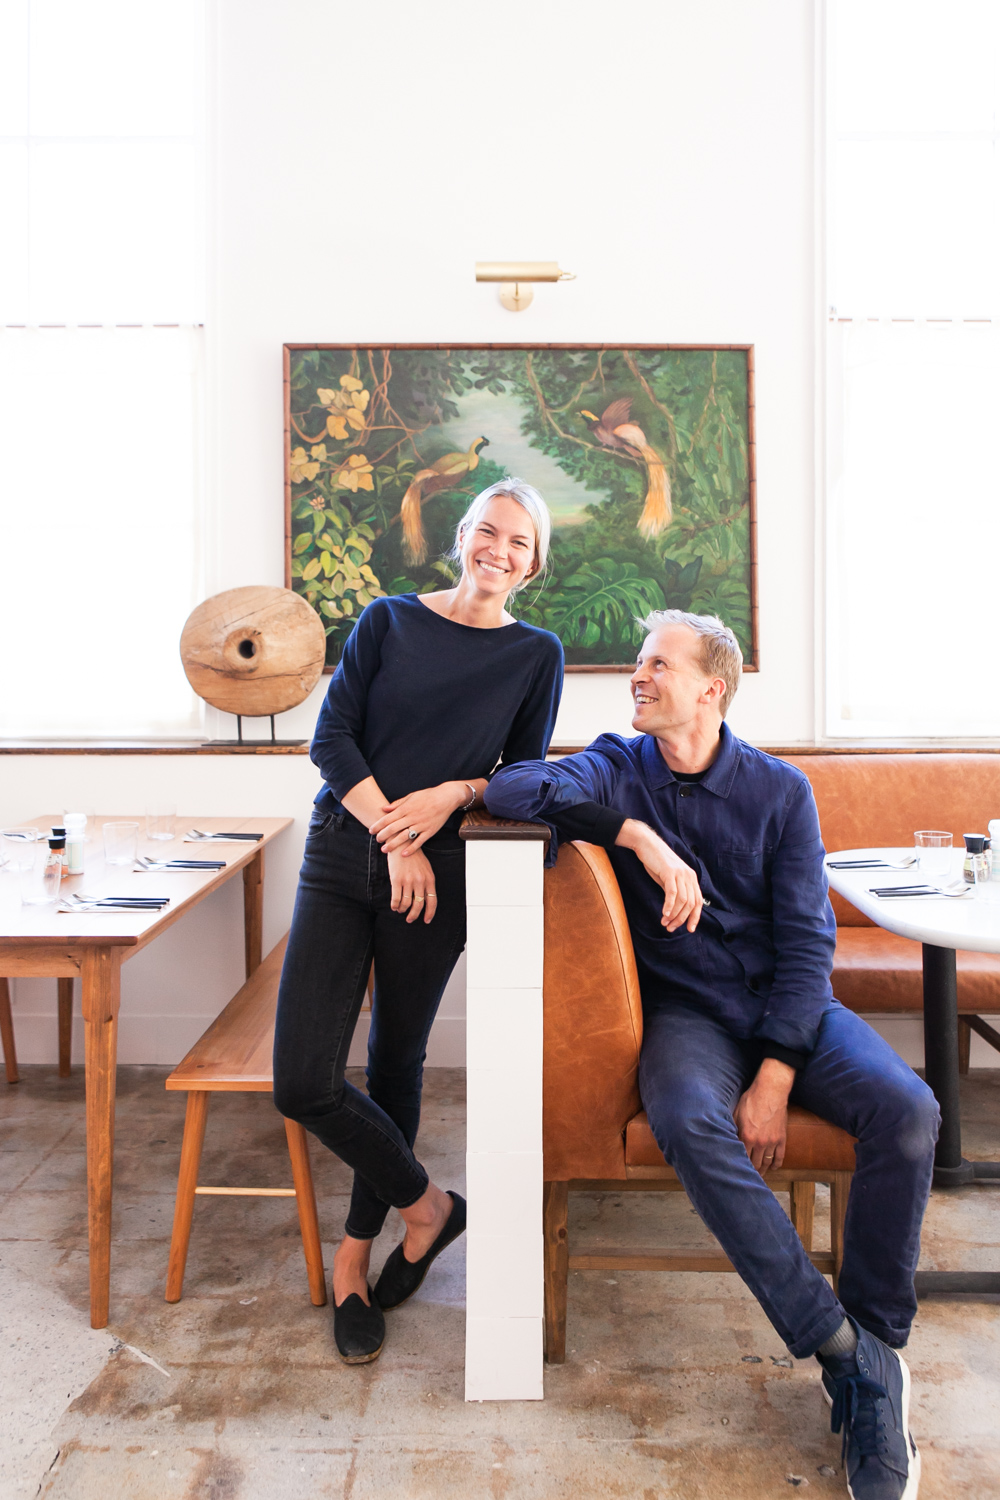 Ben and Kate Towill of Basic Kitchen and Basic Projects